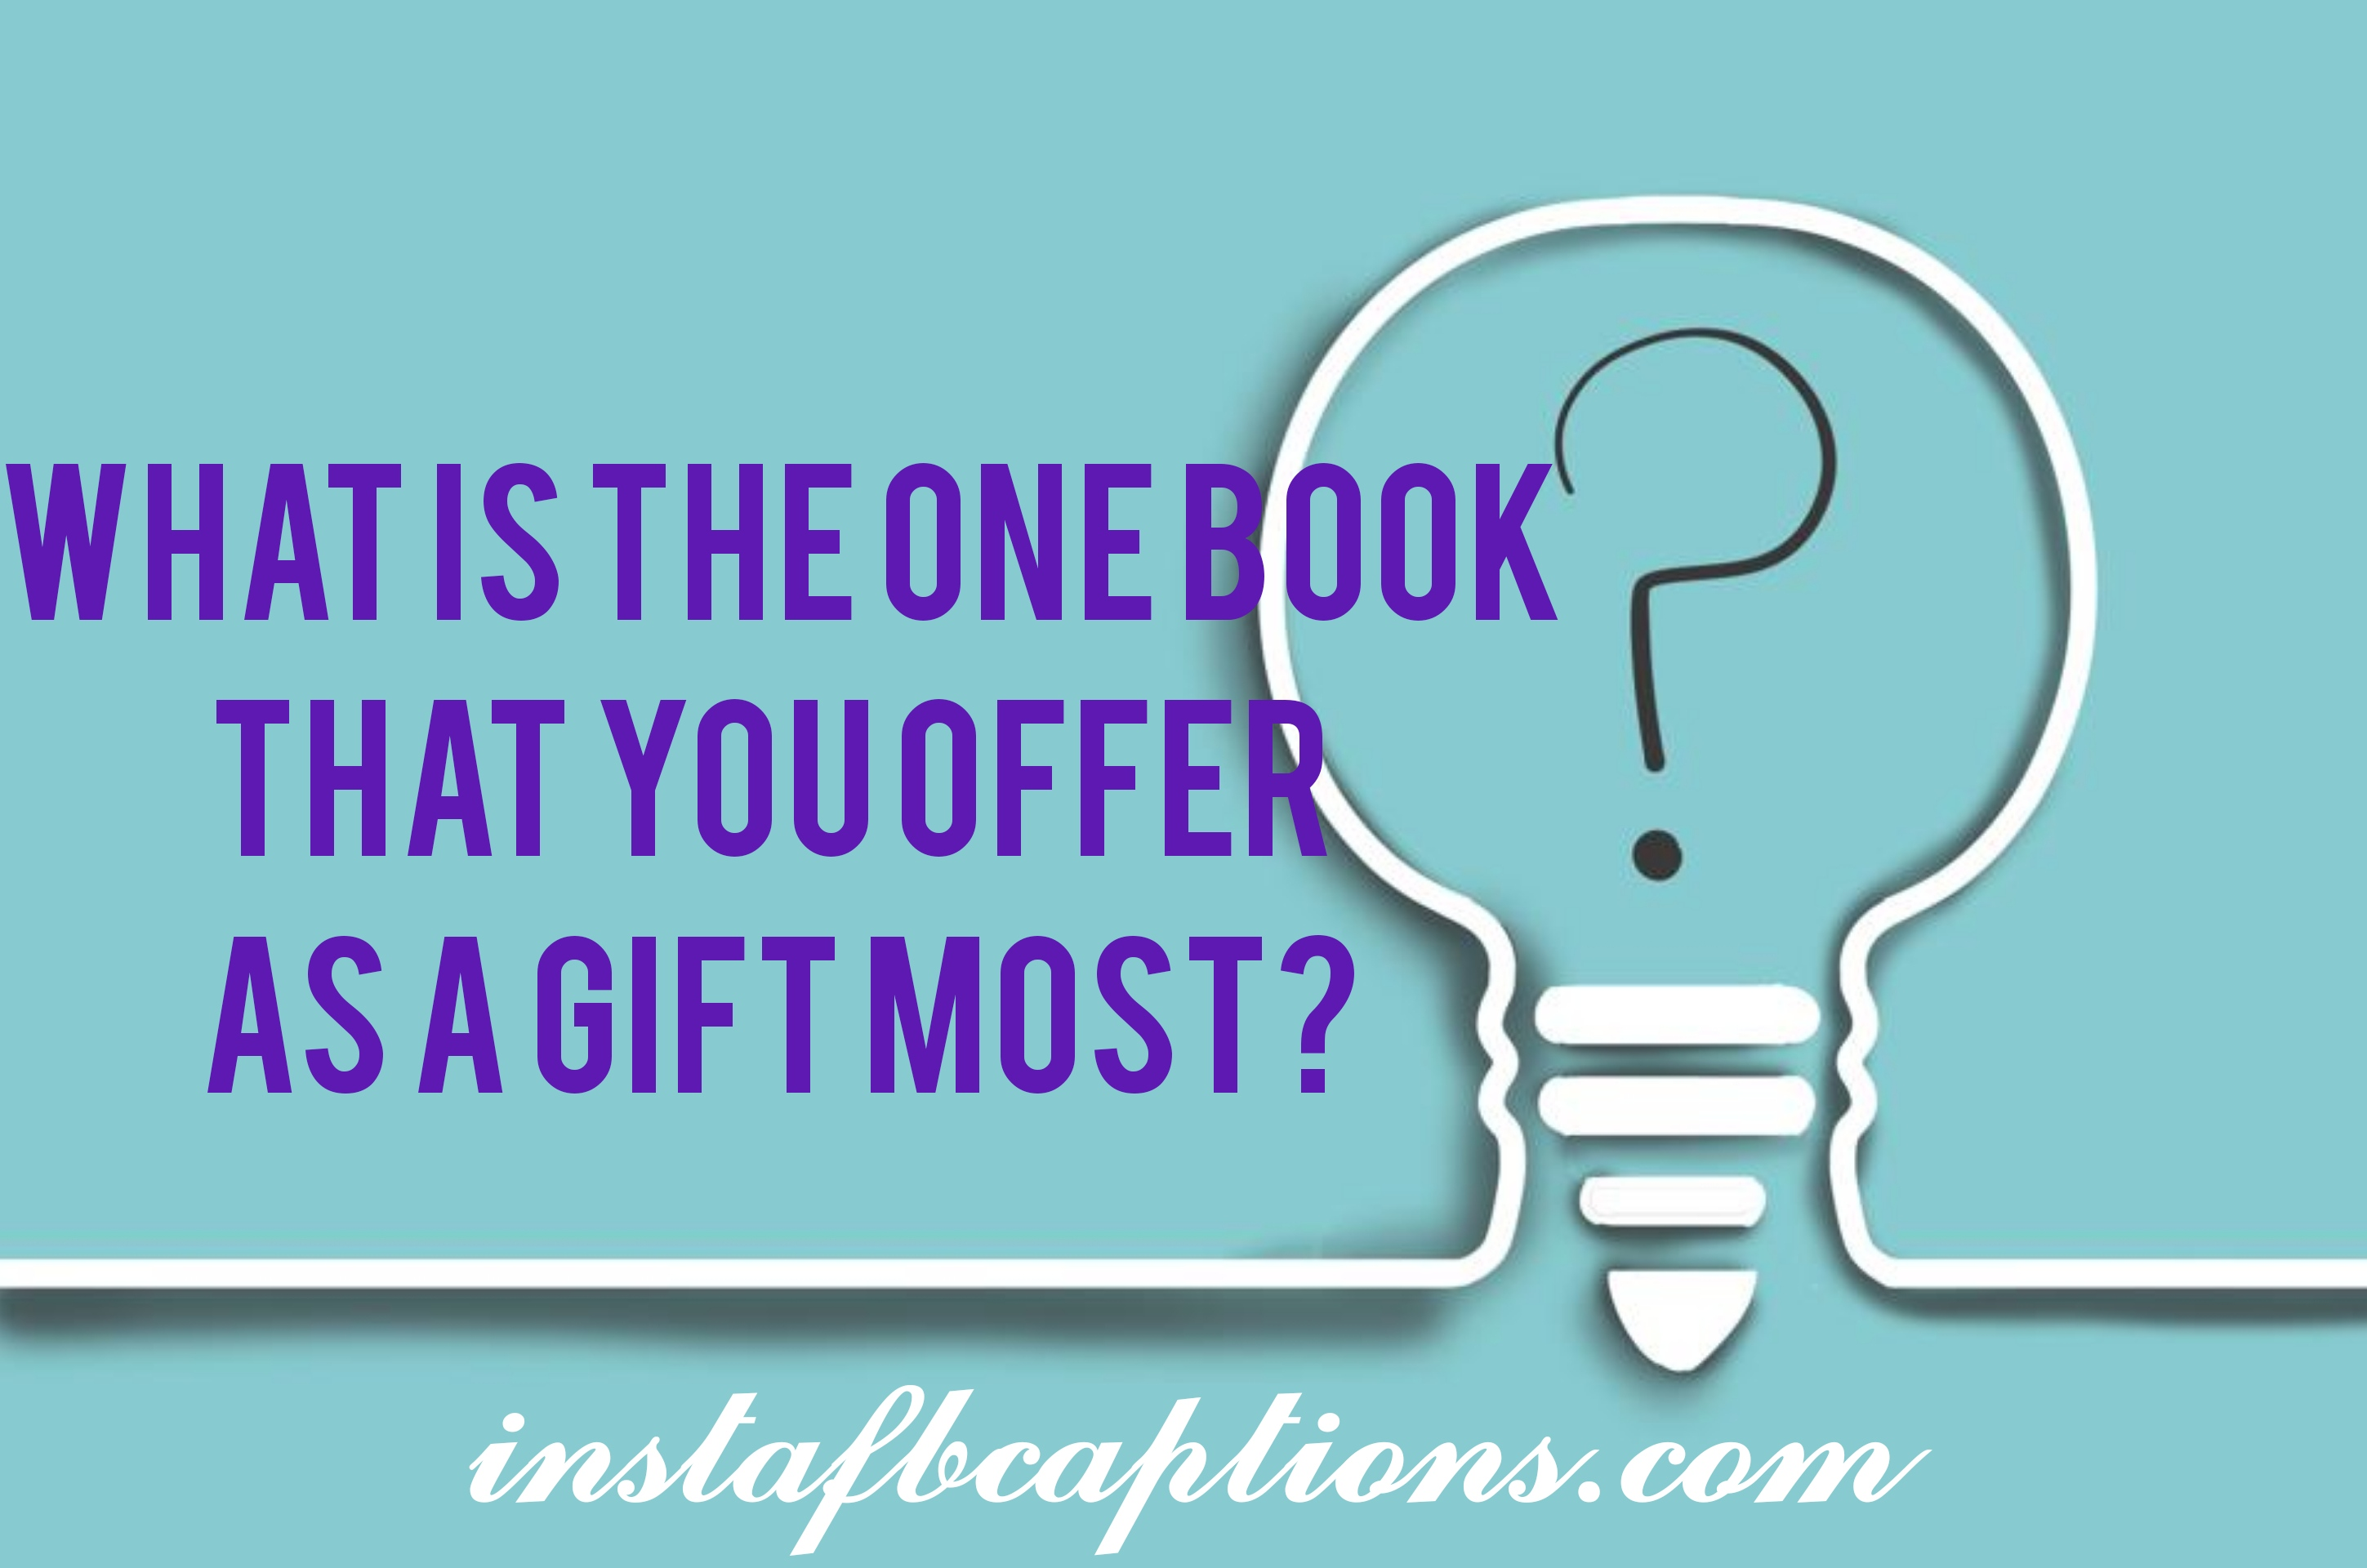 What Is The One Book That You Offer As A Gift Most  - what is the one book that you offer as a gift most - Question Instagram captions || (selfies funny Best)